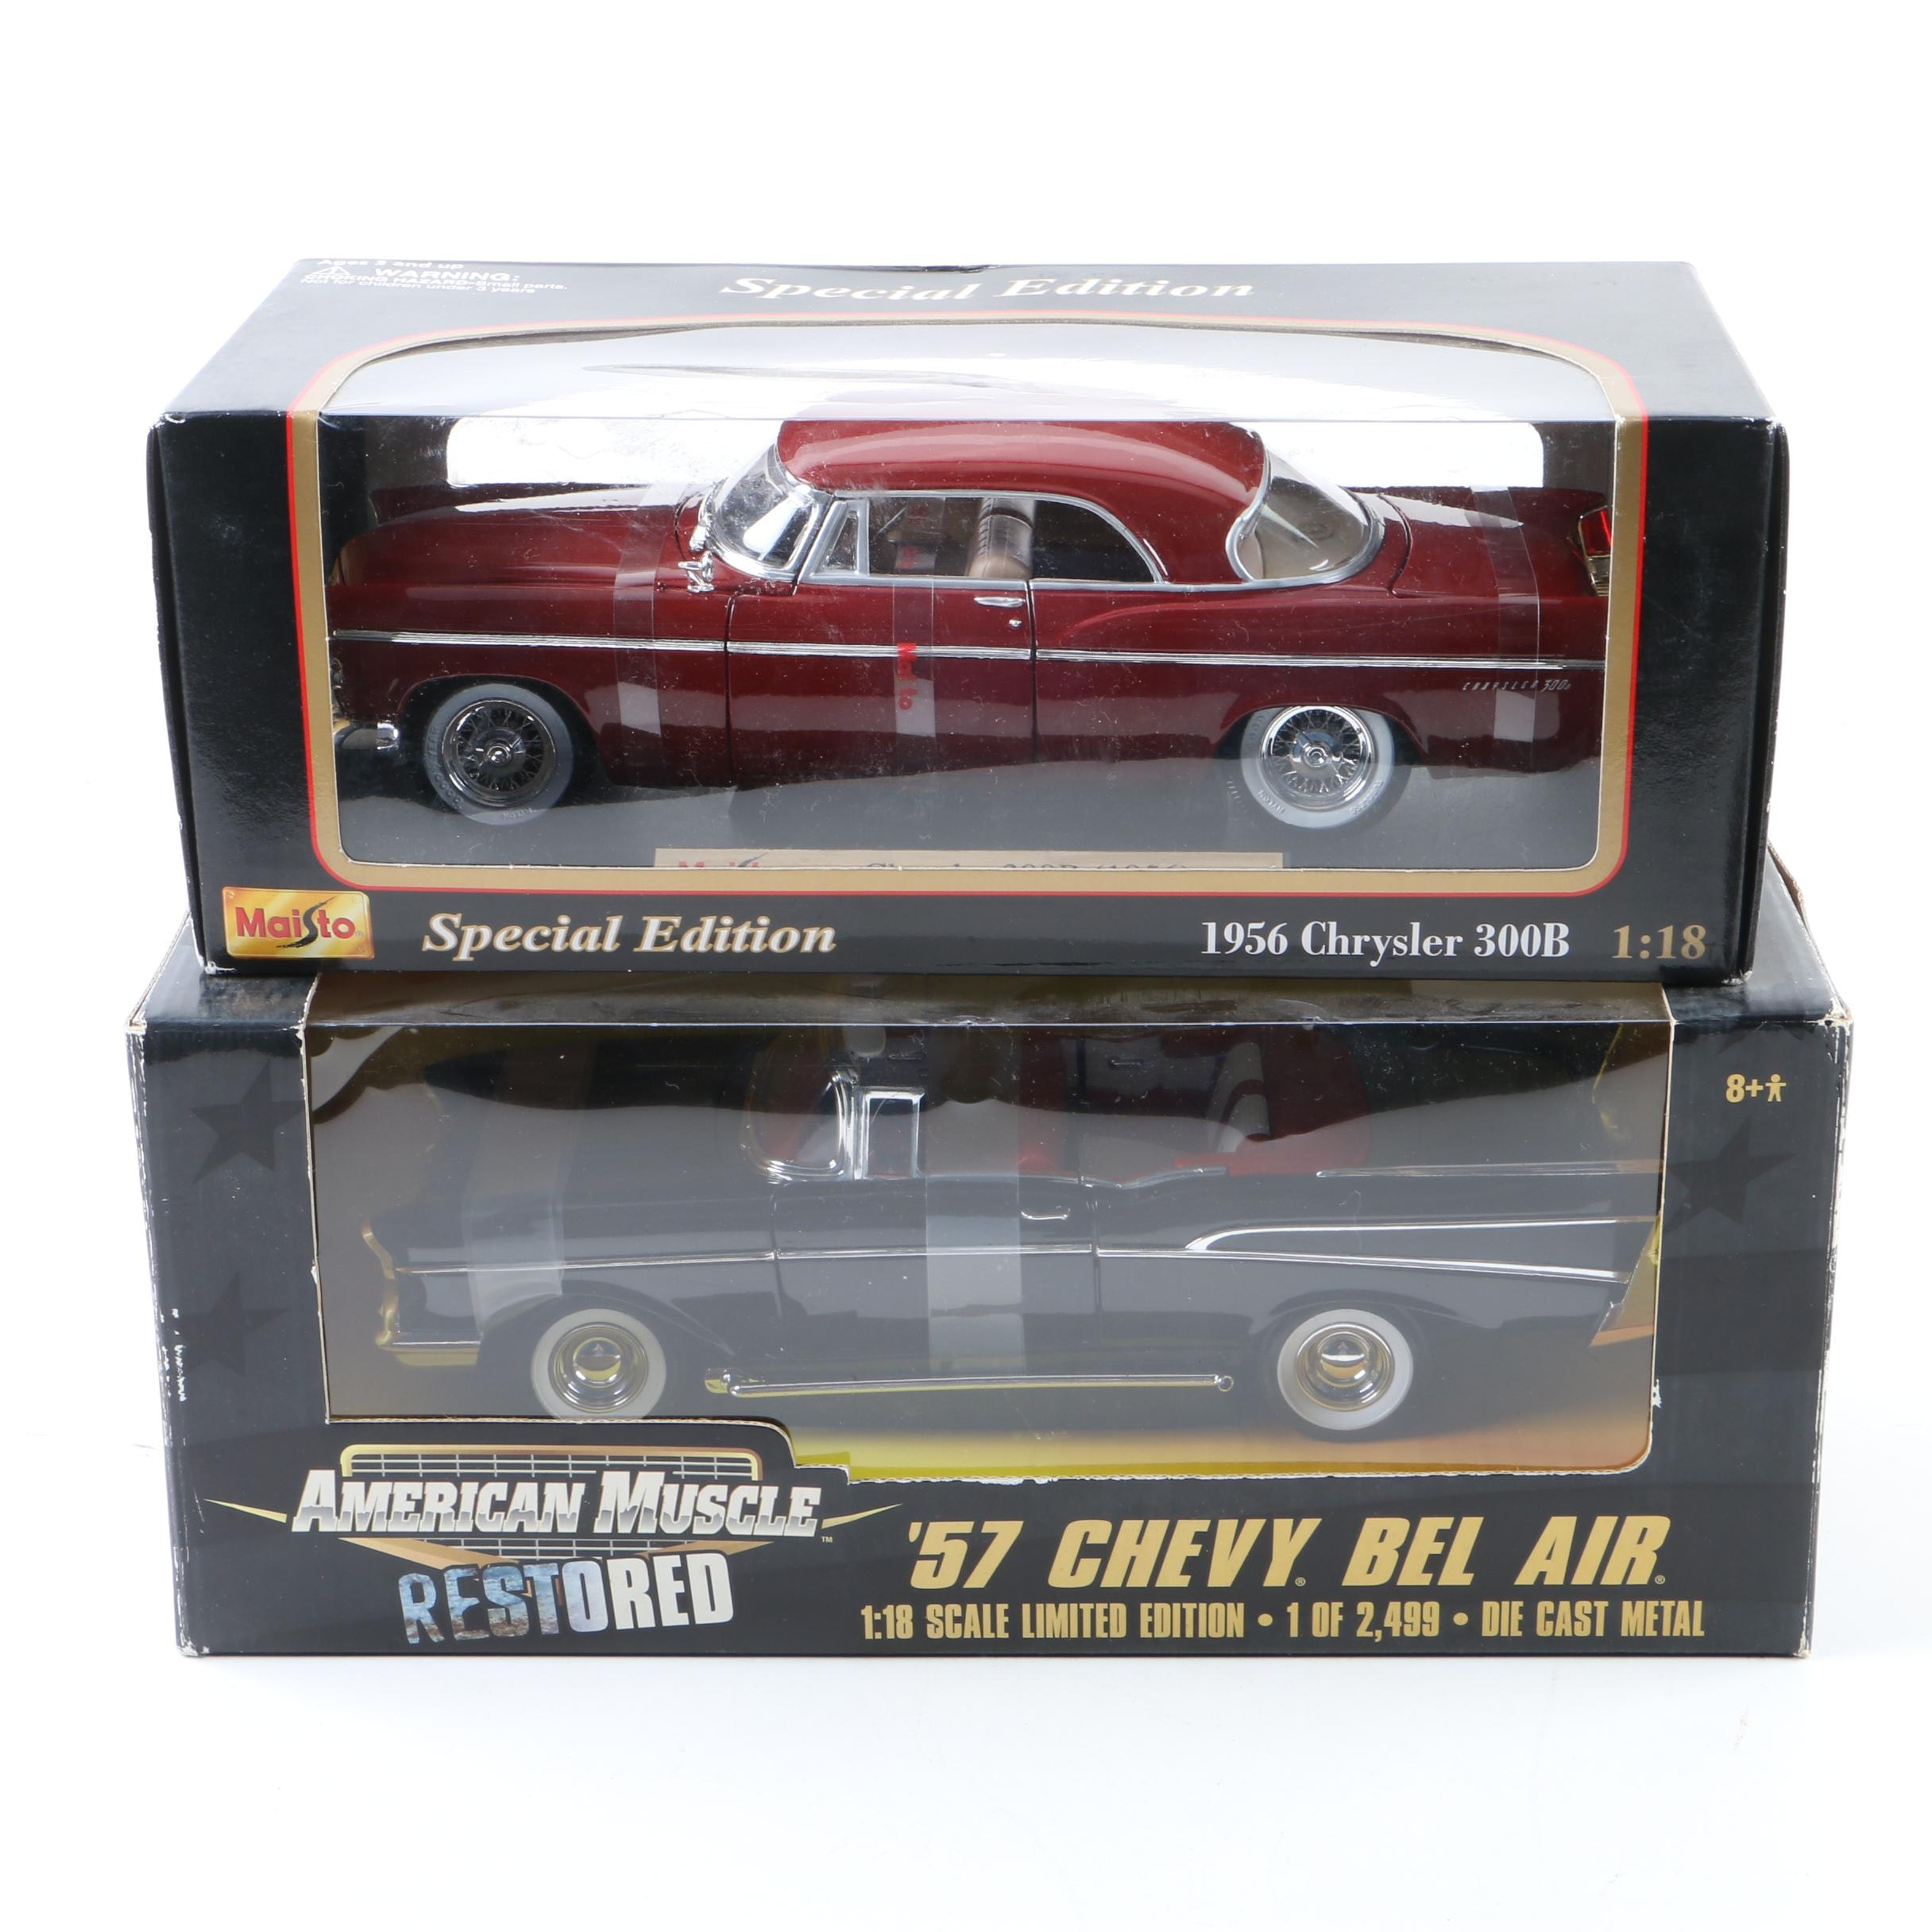 Maisto and Ertl American Muscle Die-Cast Cars